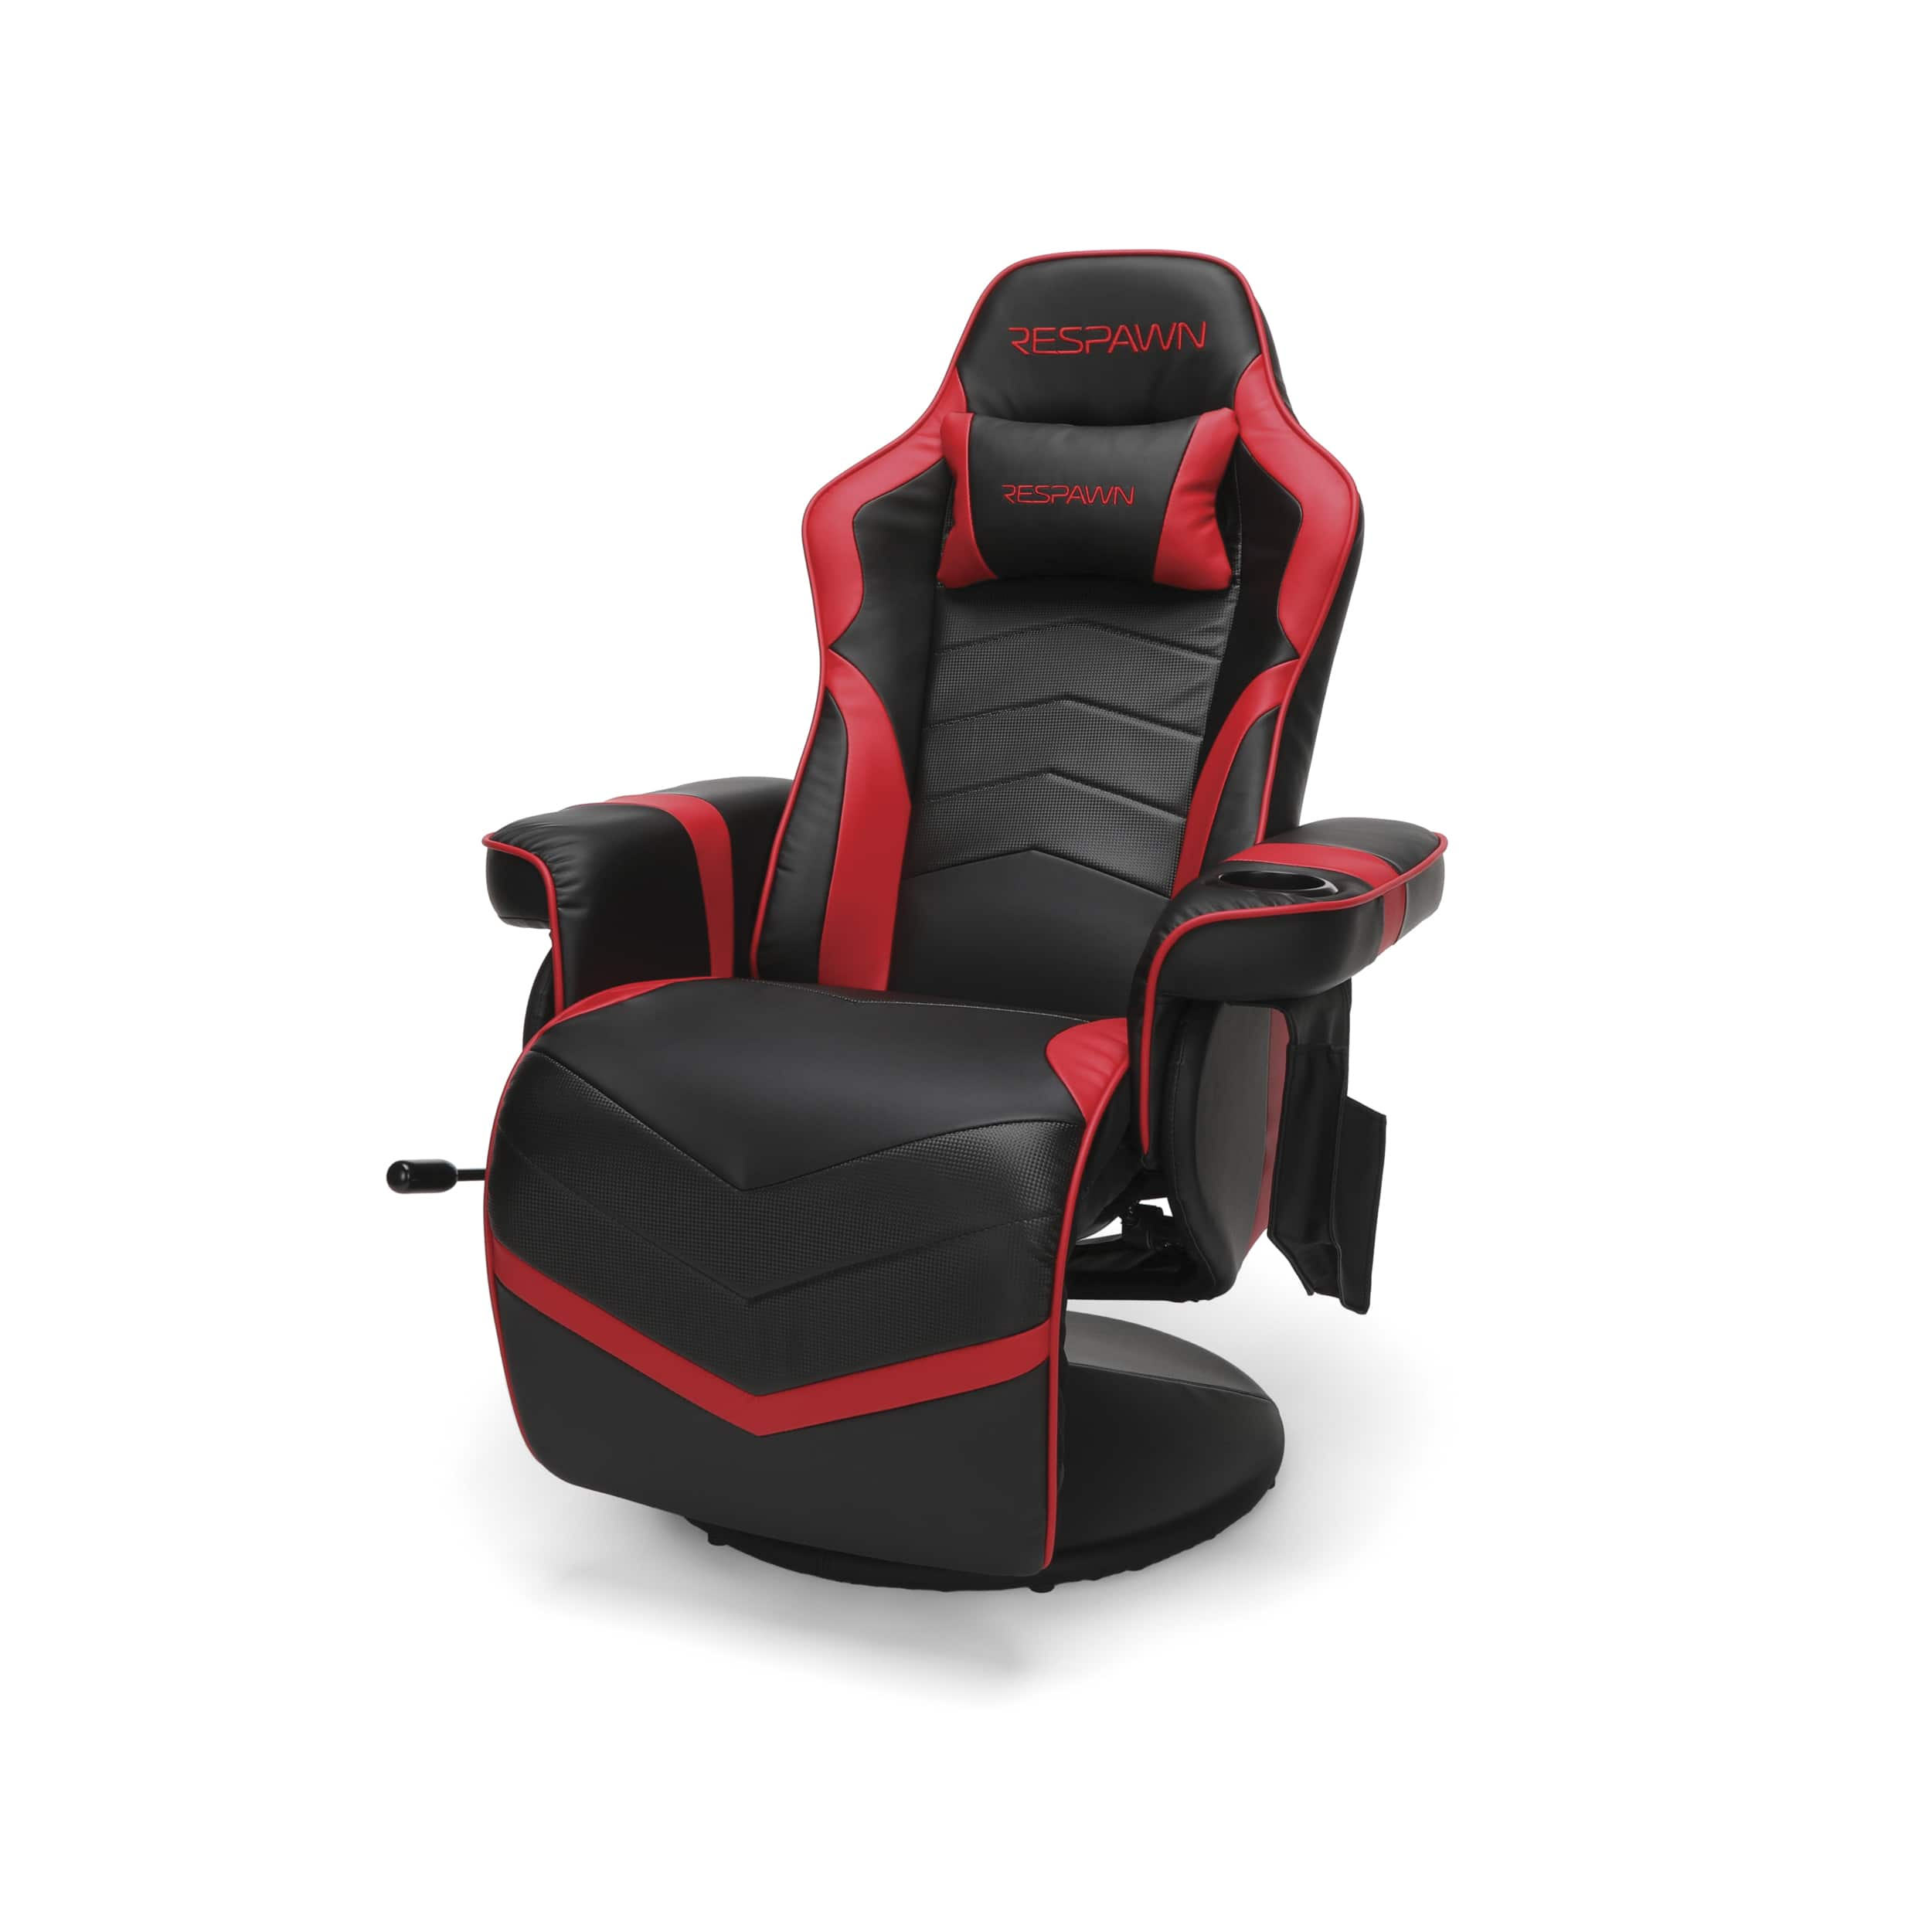 Brilliant Respawn 900 Racing Style Reclining Gaming Chair Start Date 239 98 Fs Pdpeps Interior Chair Design Pdpepsorg